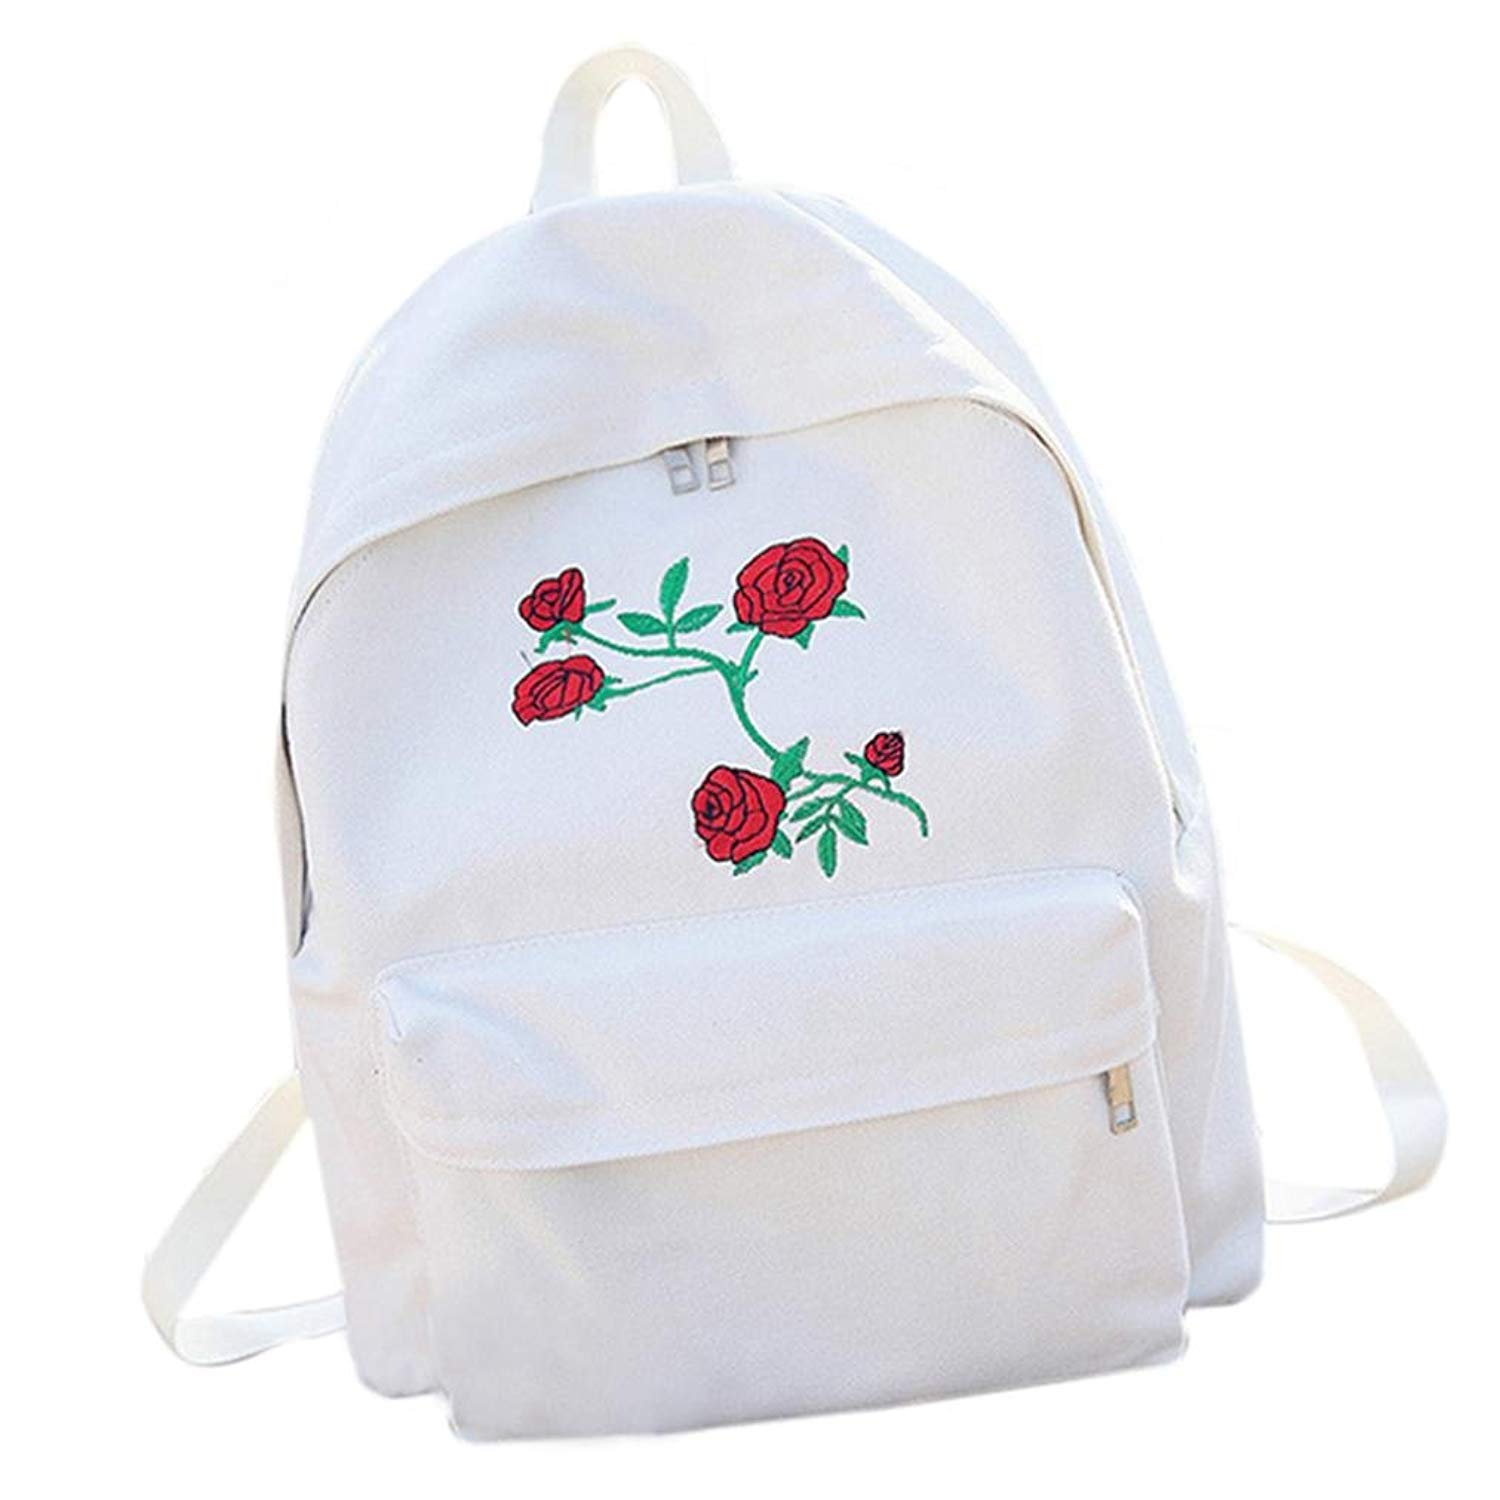 8f8eb7aab0dc Cheap Clearance Canvas, find Clearance Canvas deals on line at ...